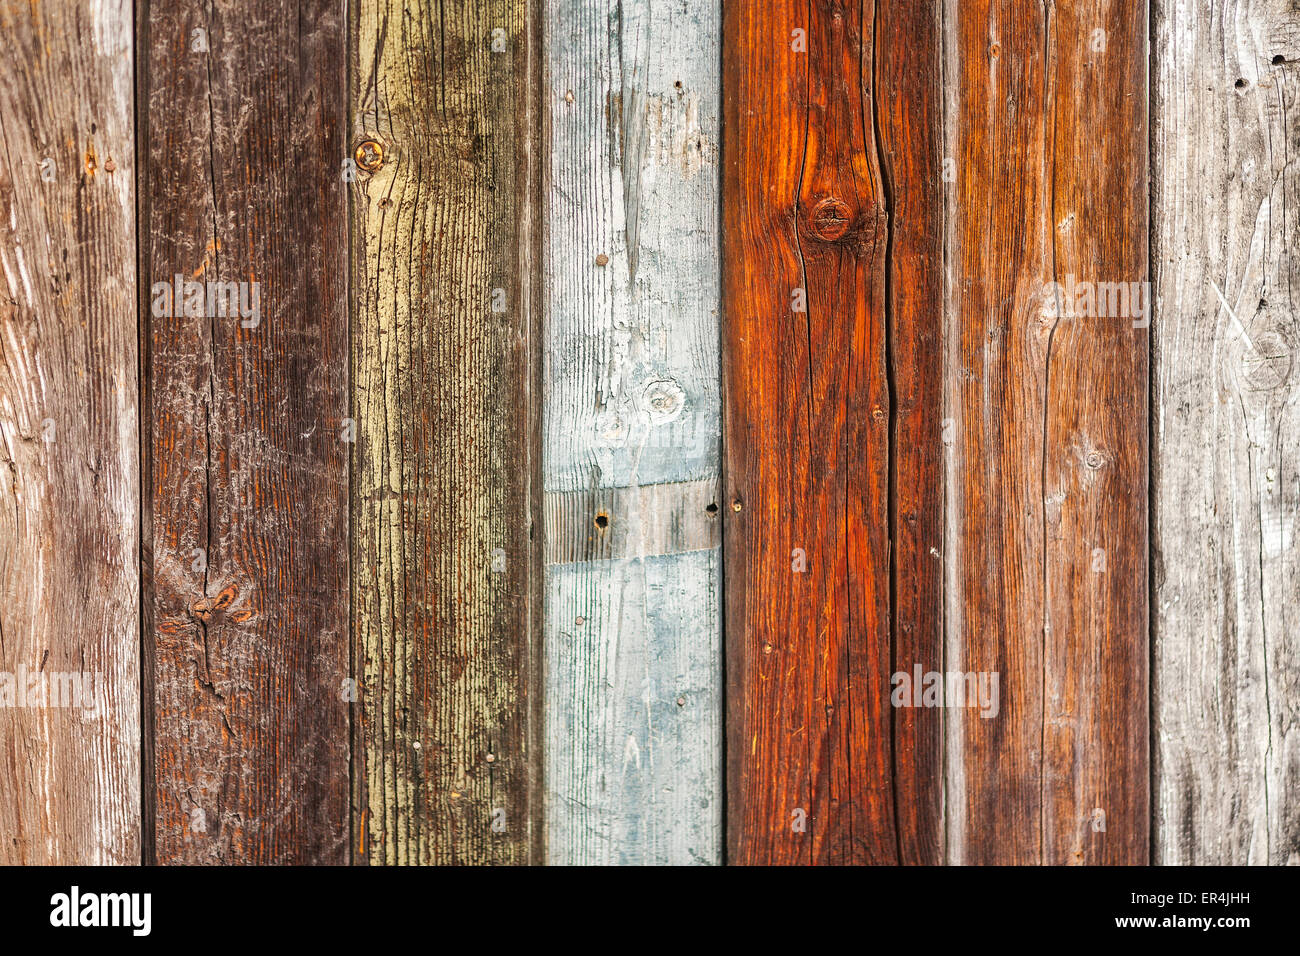 Tones of different wooden planks - Stock Image